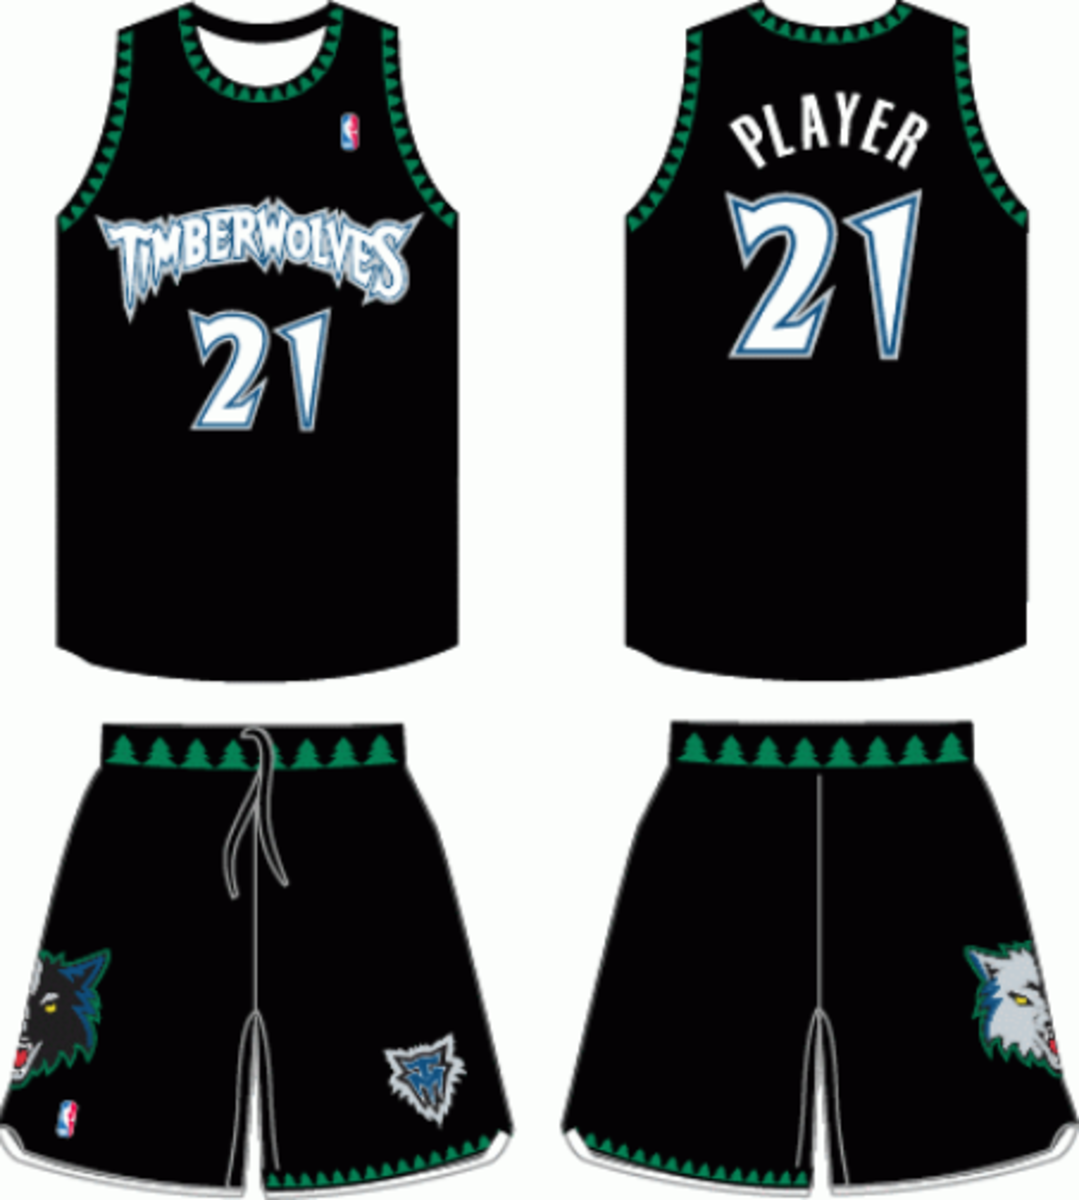 0c82b9a21 Wolves bringing back throwback uniforms next season  - Bring Me The News